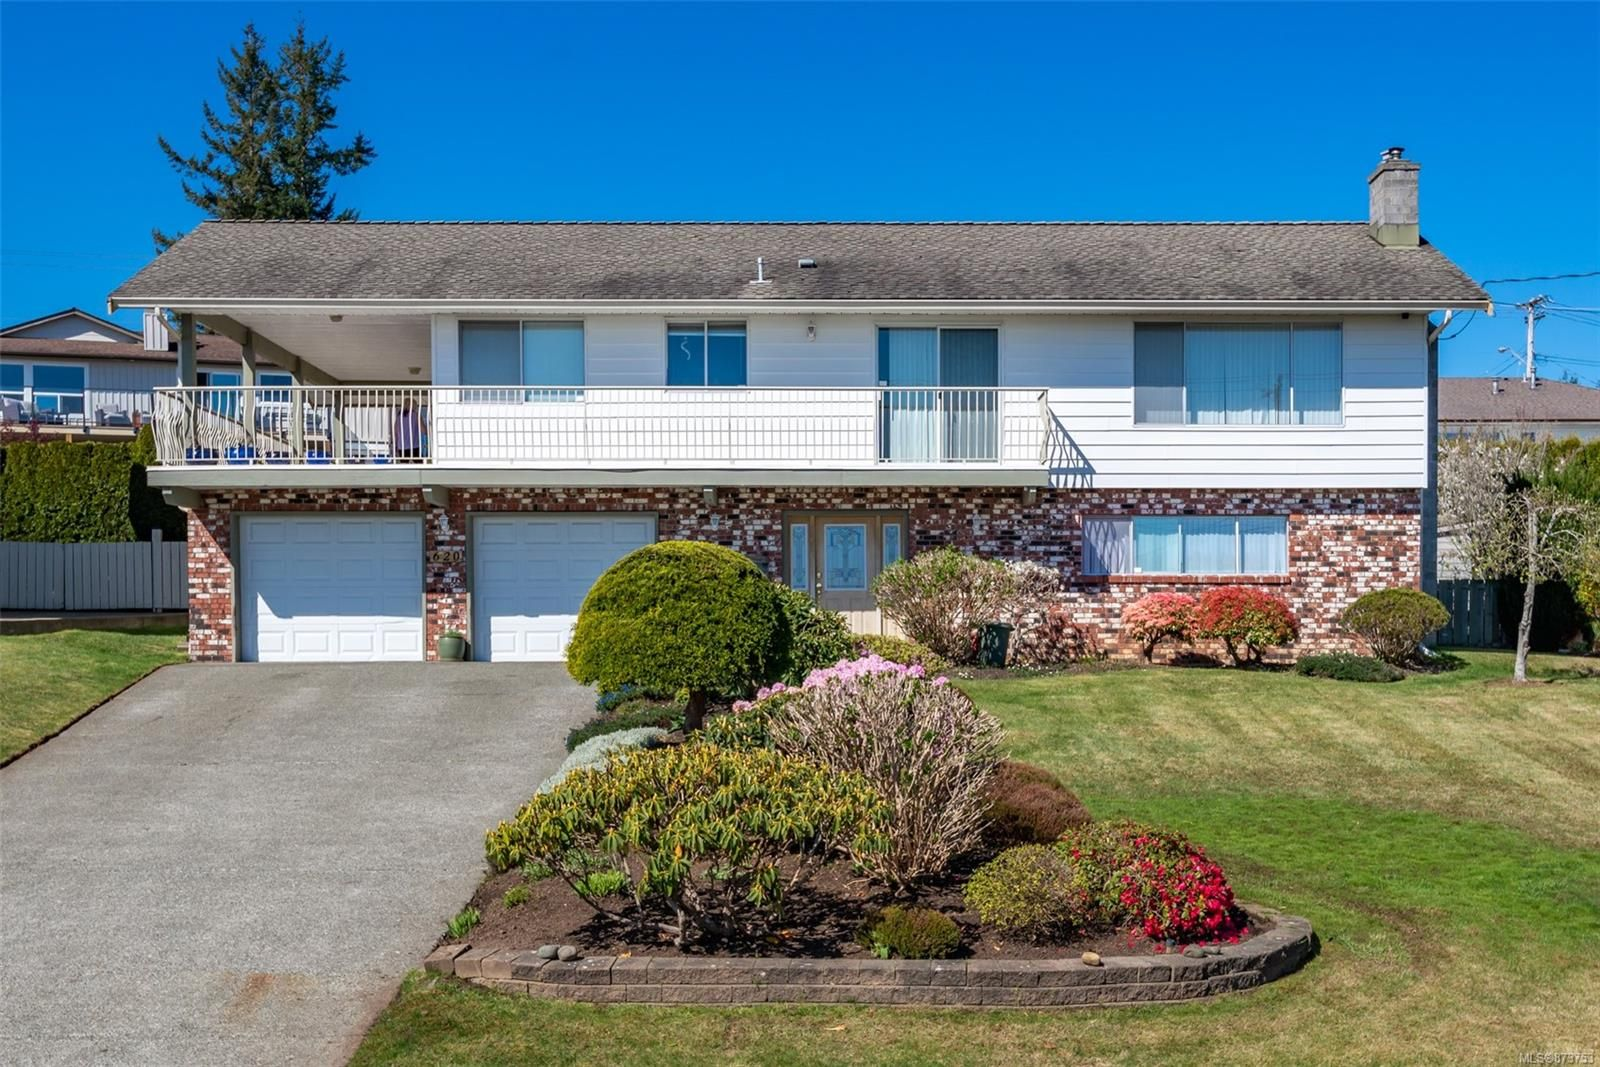 Main Photo: 620 Galerno Rd in : CR Campbell River Central House for sale (Campbell River)  : MLS®# 873753